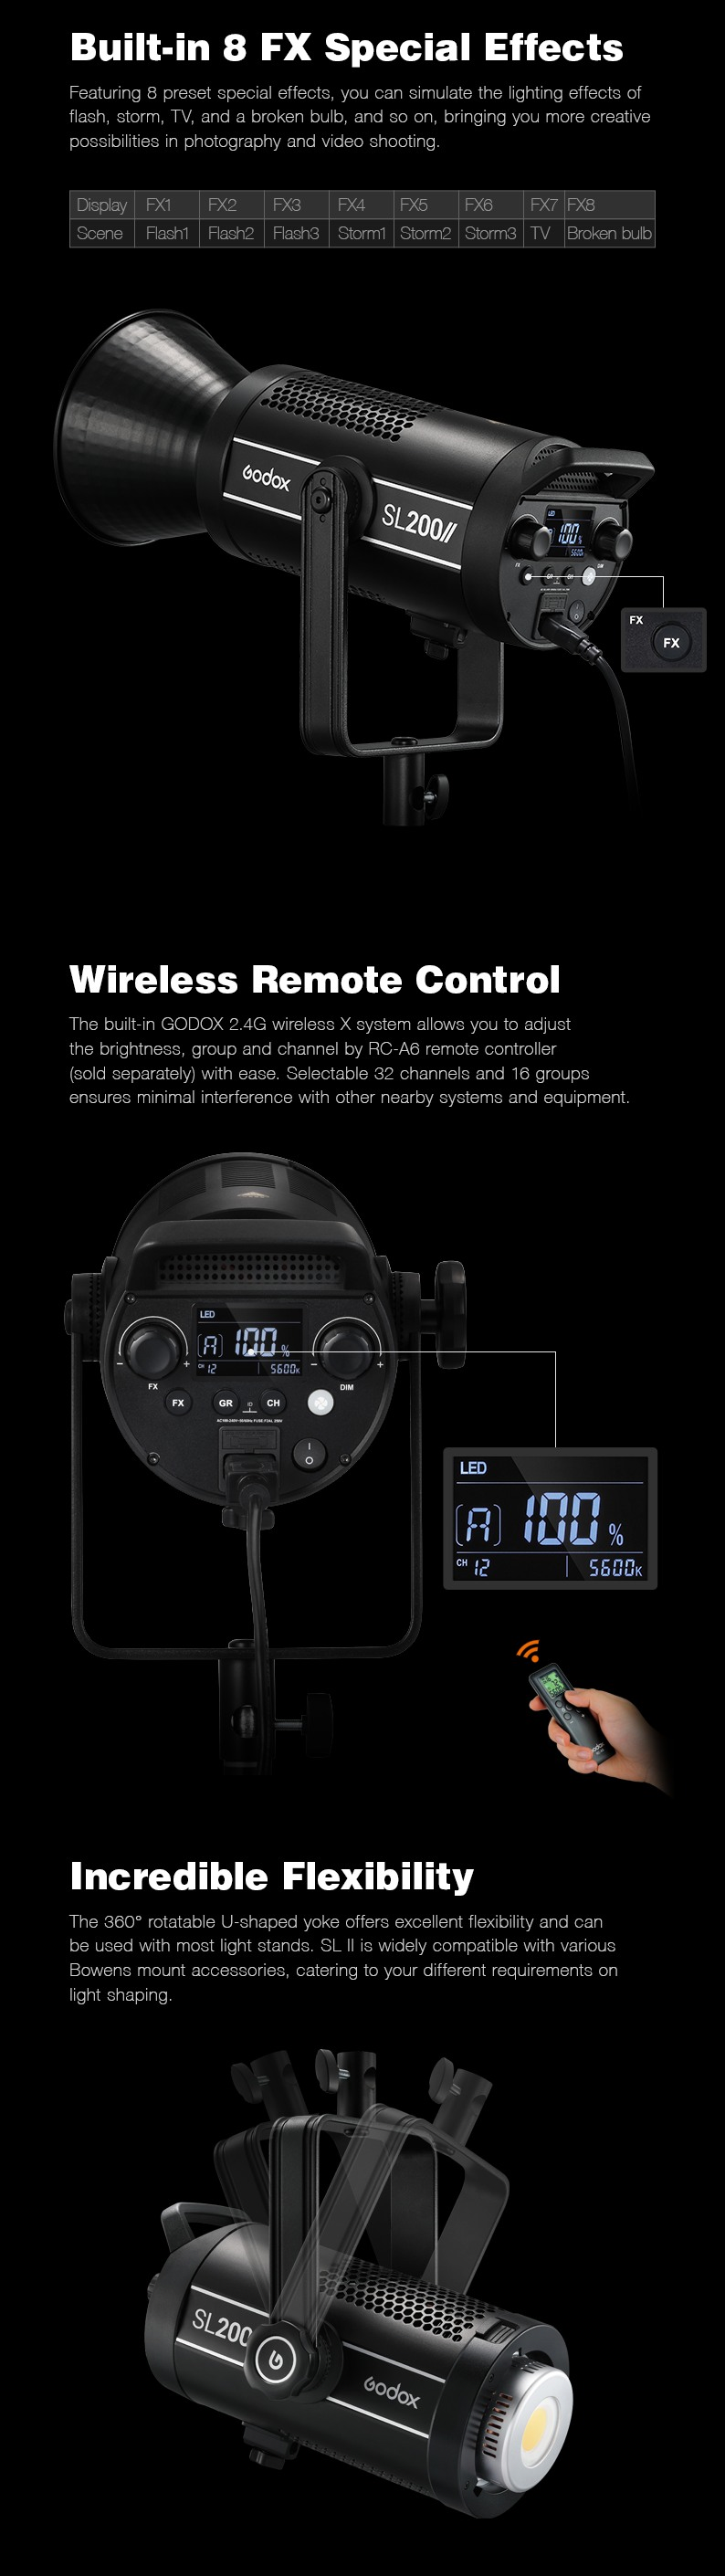 Godox SL series Built-in 8 FX Special Effects. Wireless Remote Control. Incredible Flexbility.